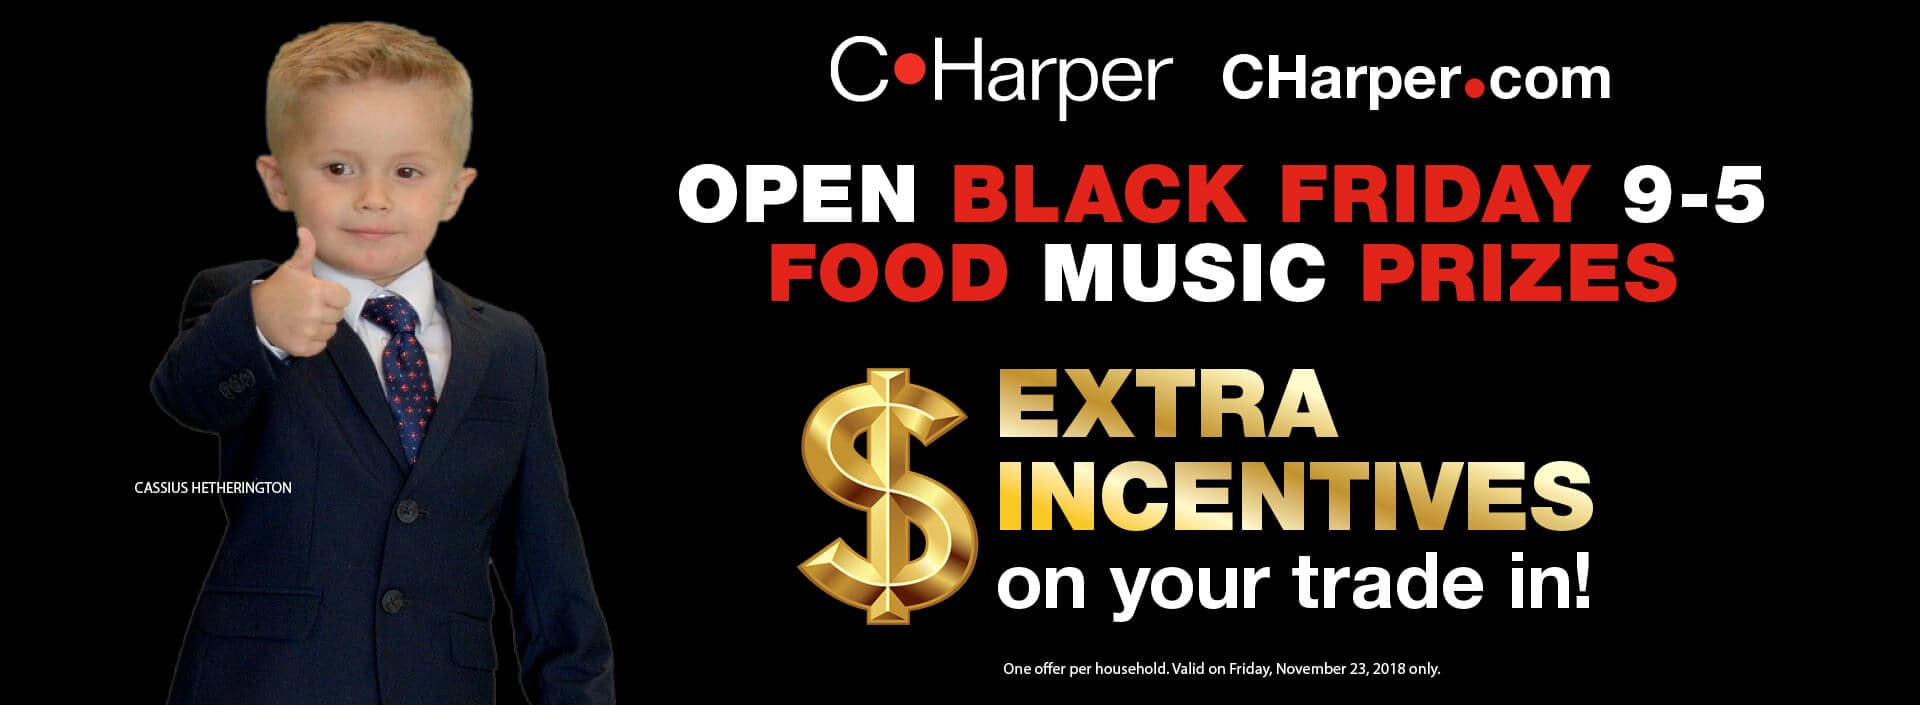 Extra incentives on your trade-in for Black Friday!